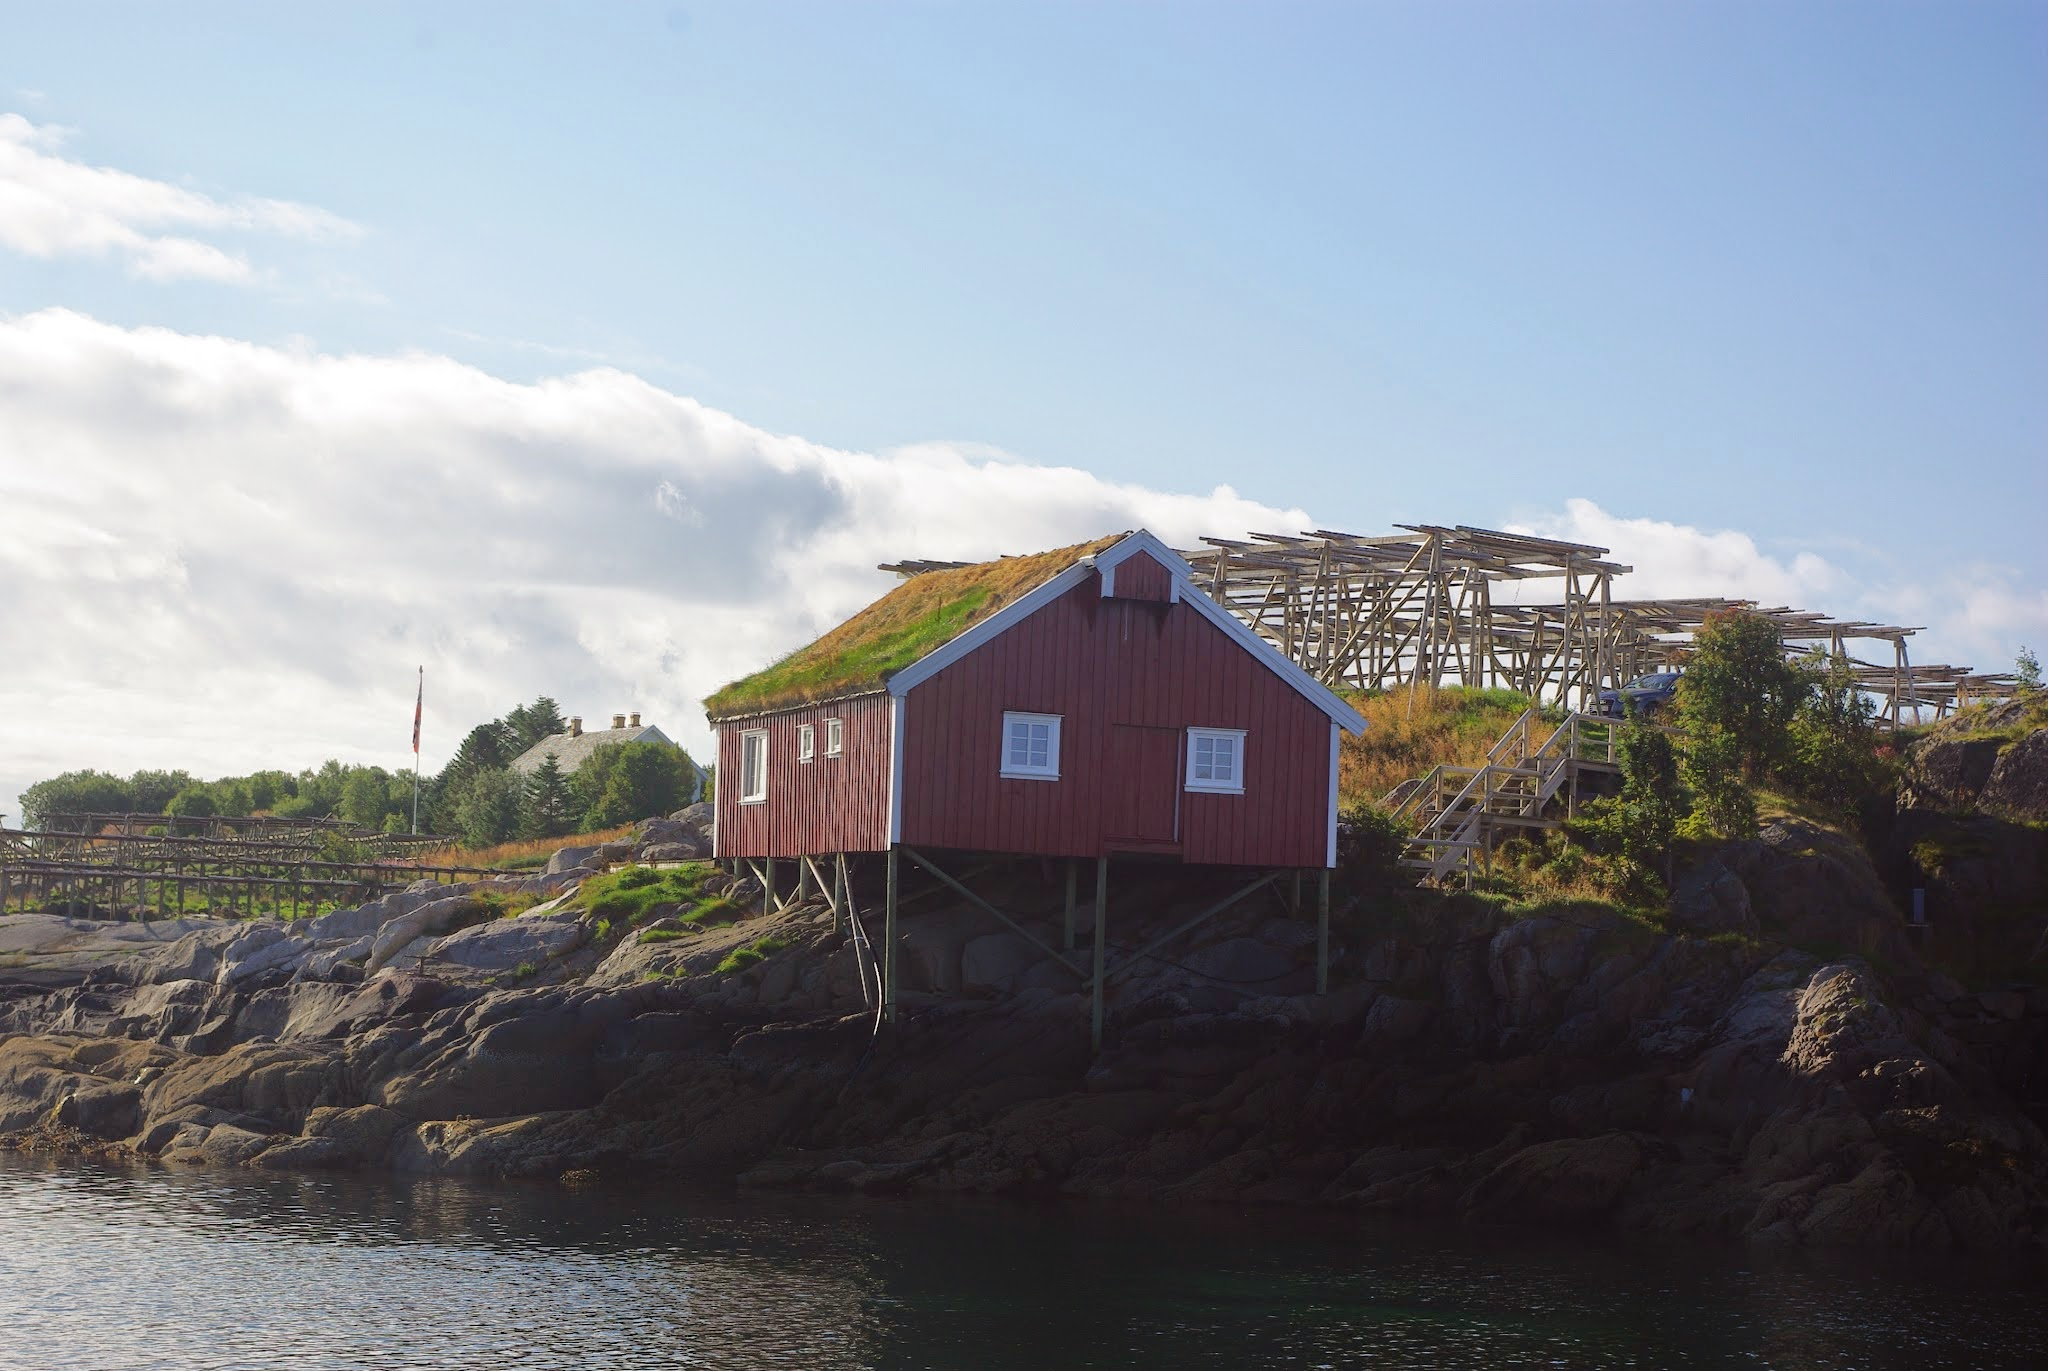 A traditional sod roof on a fjord-side building near Reine. You can also see some cod-drying racks behind it, a common sight in the area.